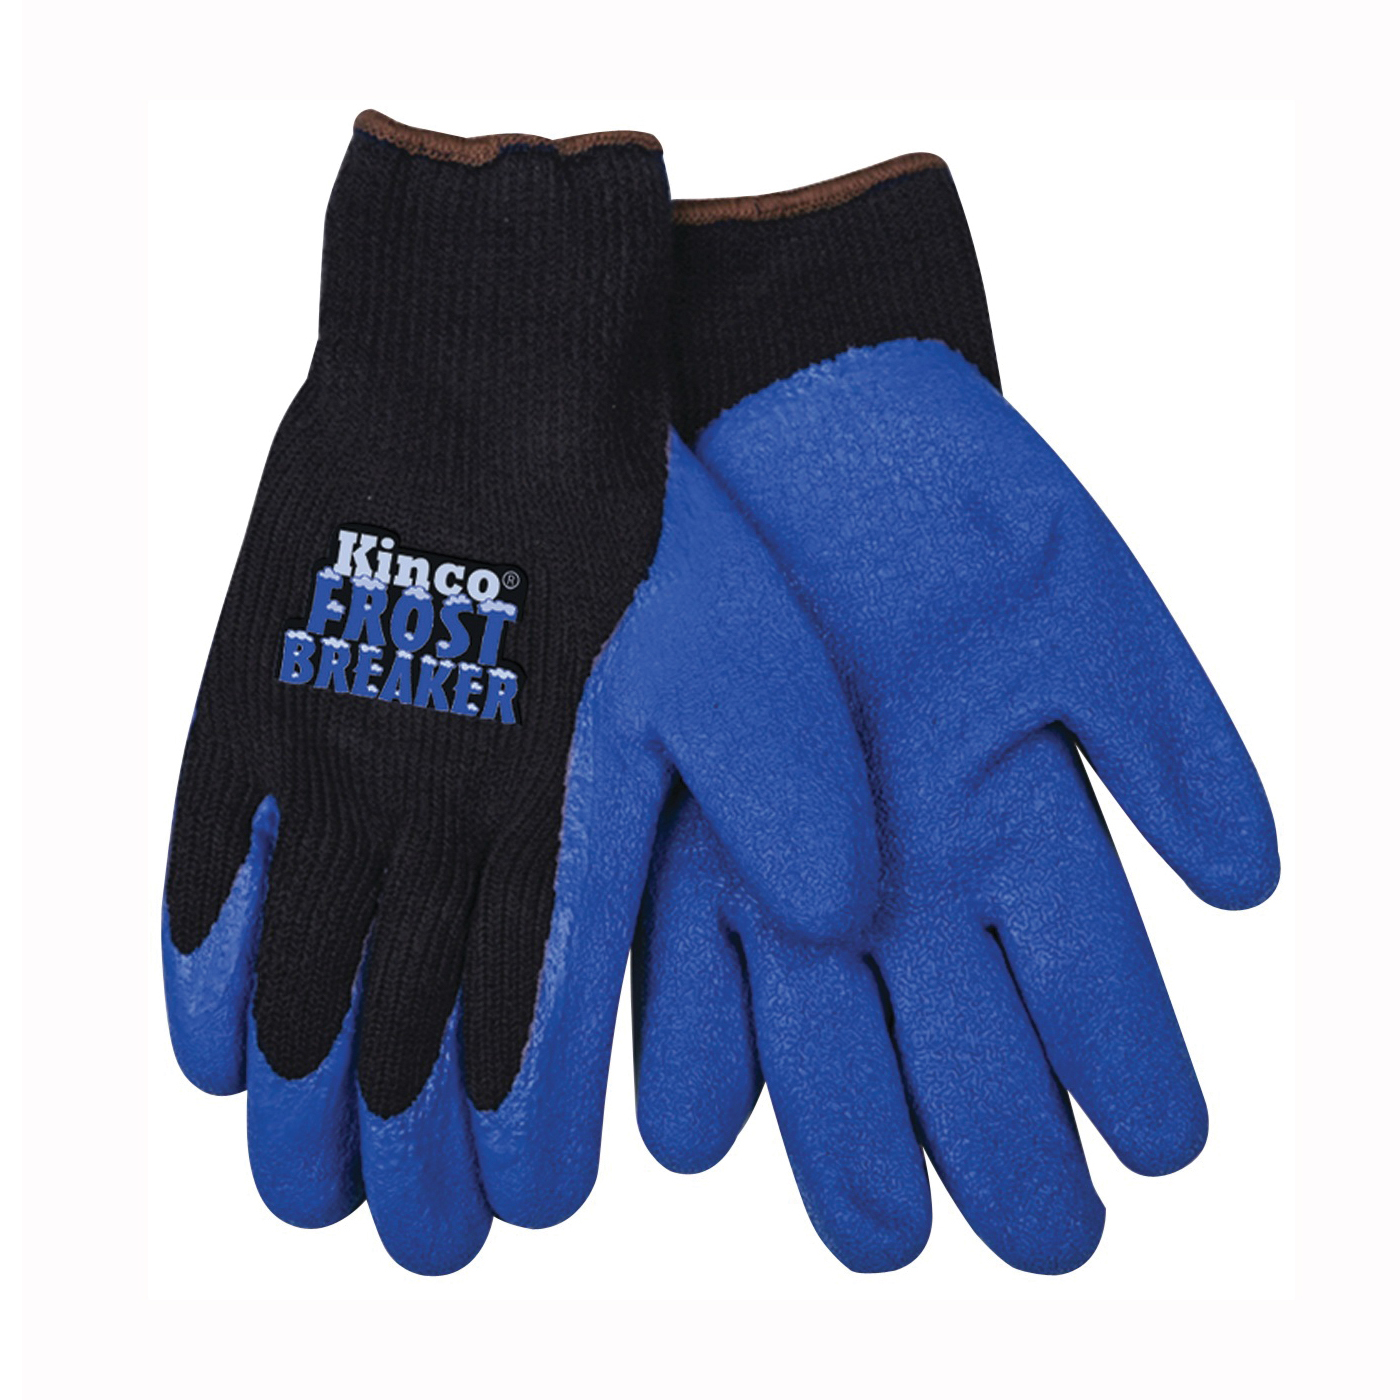 Picture of Frost Breaker 1789-S Protective Gloves, Men's, S, 11 in L, Regular Thumb, Knit Wrist Cuff, Acrylic, Black/Blue